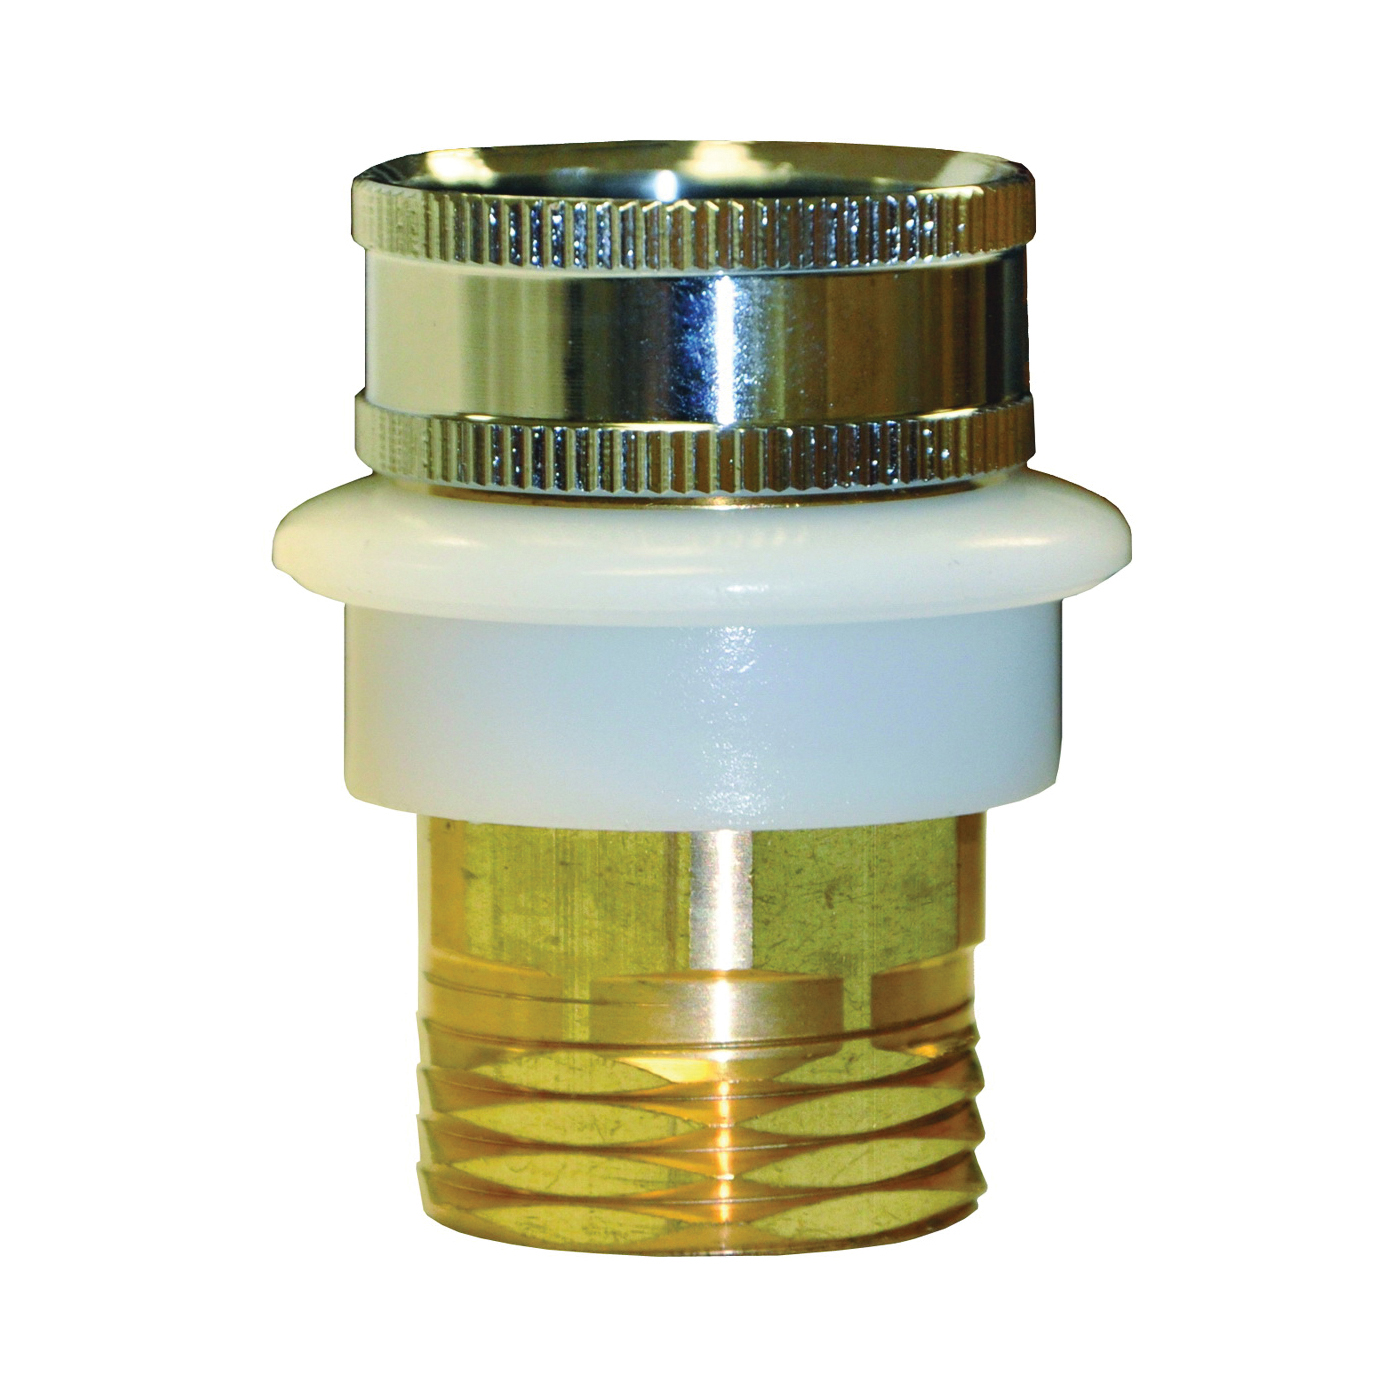 Picture of Danco 10518 Hose Adapter, 3/4 x 3/4 in, GHTM x GHTF, Brass, Chrome